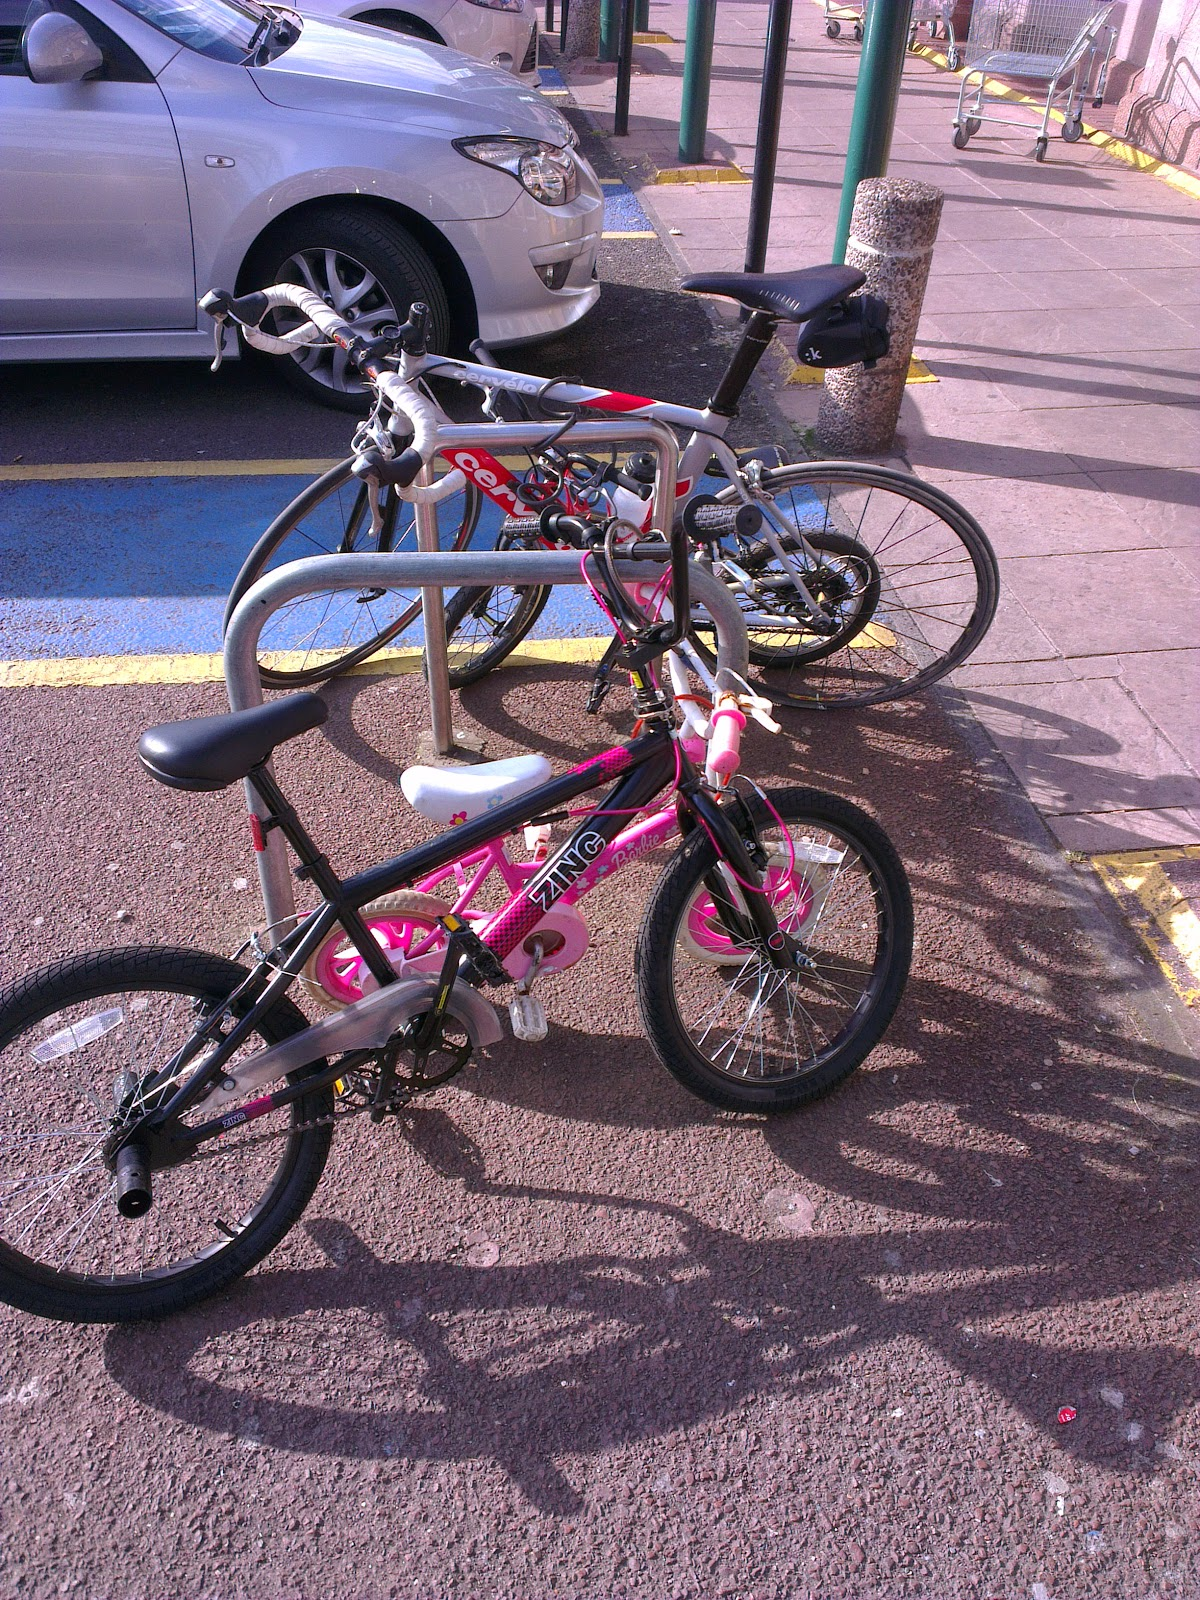 Bike parking provision at Morrisons Pollokshaws